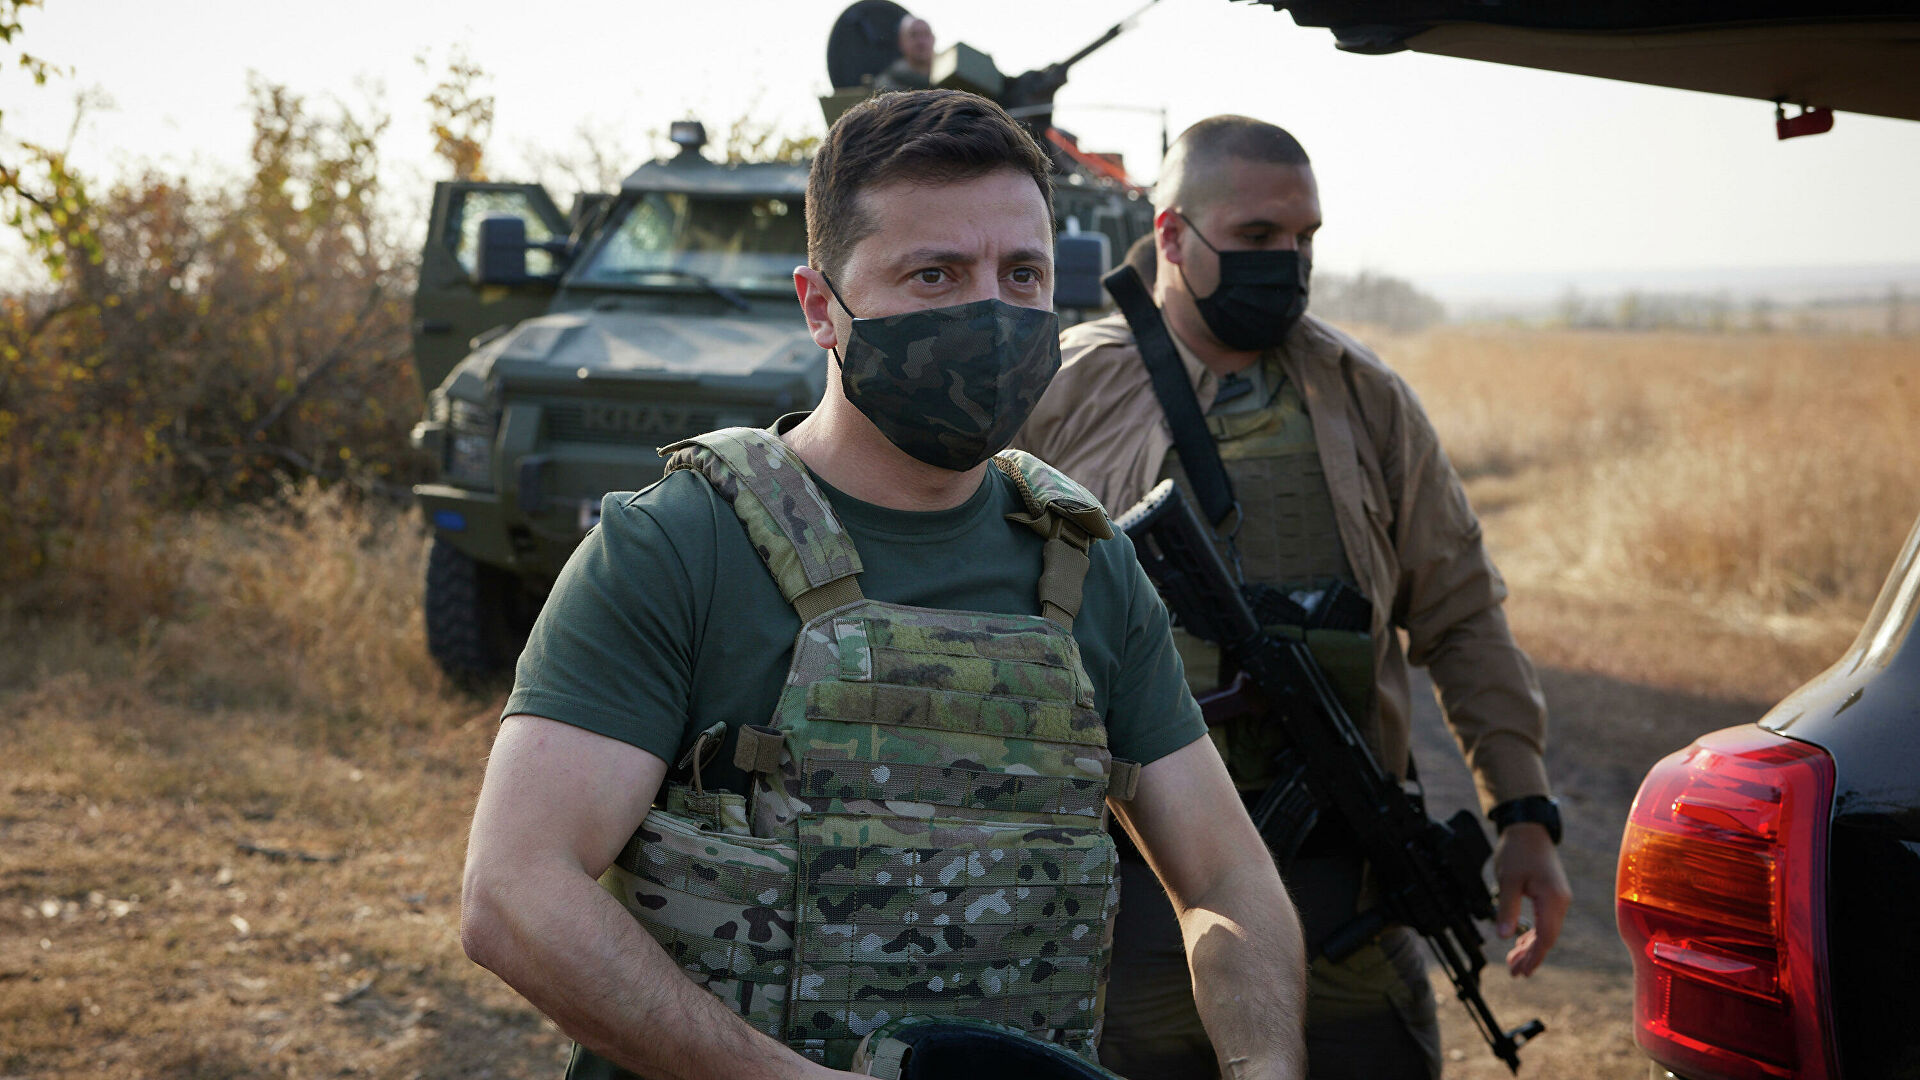 Zelensky arrives in Donbass to meet with security officials